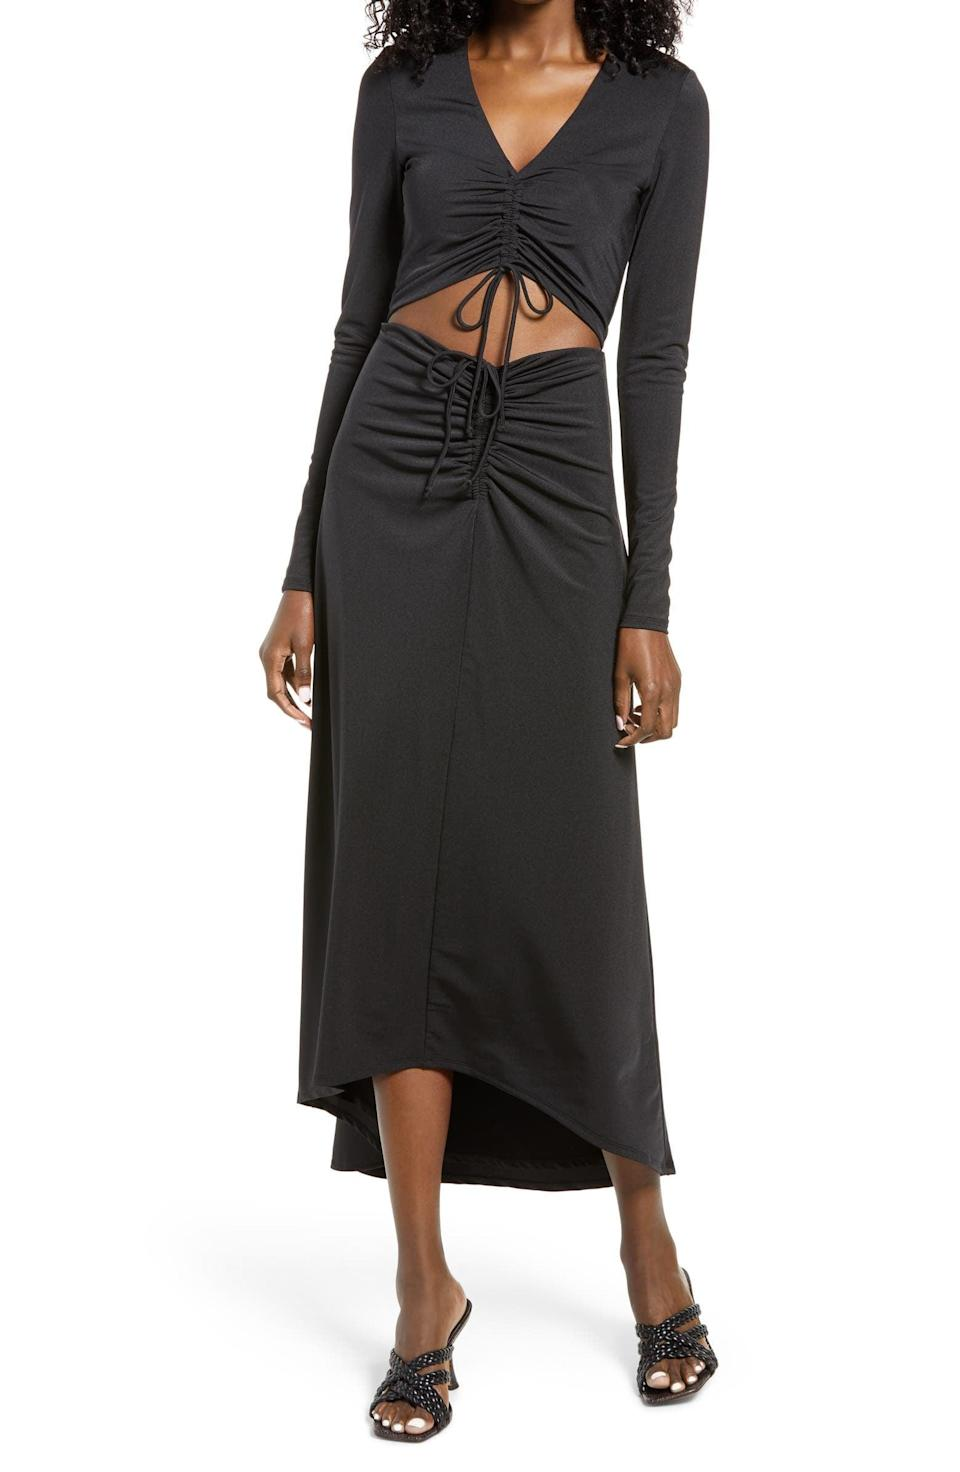 <p>The midriff-baring cutout of this <span>AFRM Rhys Cutout Long Sleeve Midi Dress</span> ($77, originally $128) adds an element of surprise that is extremely flattering.</p>